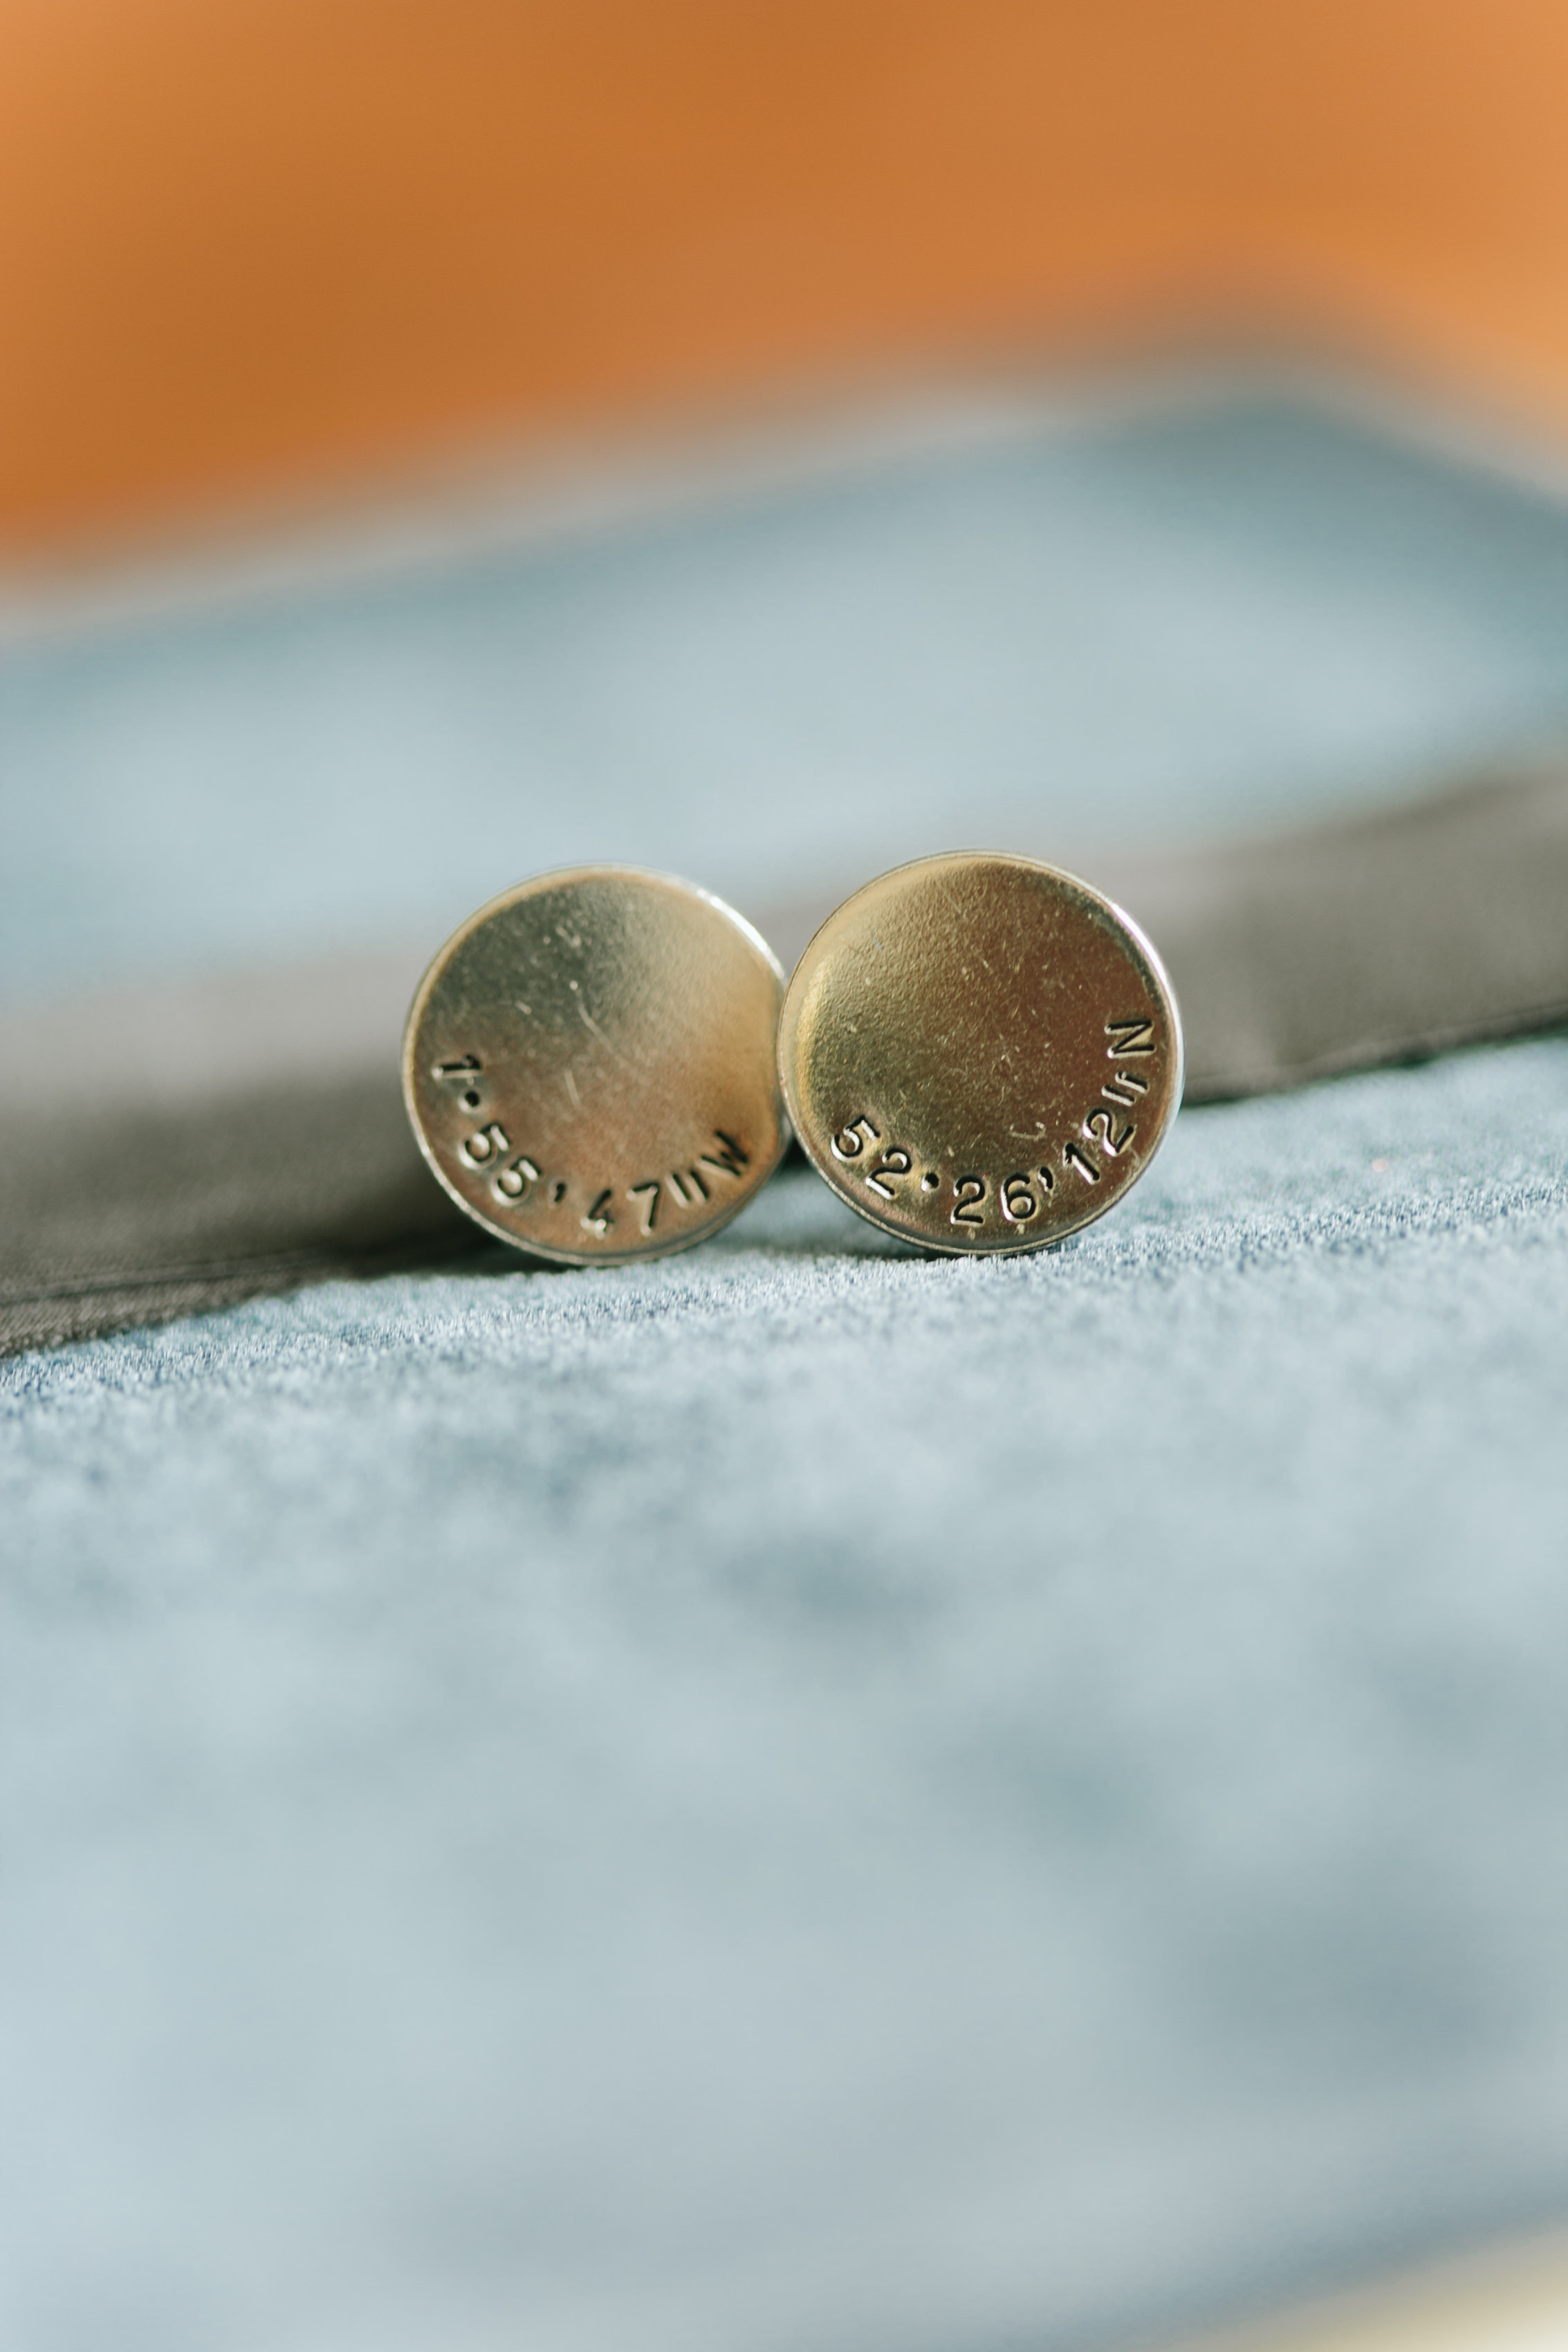 The Best Little Details from Our Wedding - How We Made Our Wedding Incredibly Personal - Cuff Links